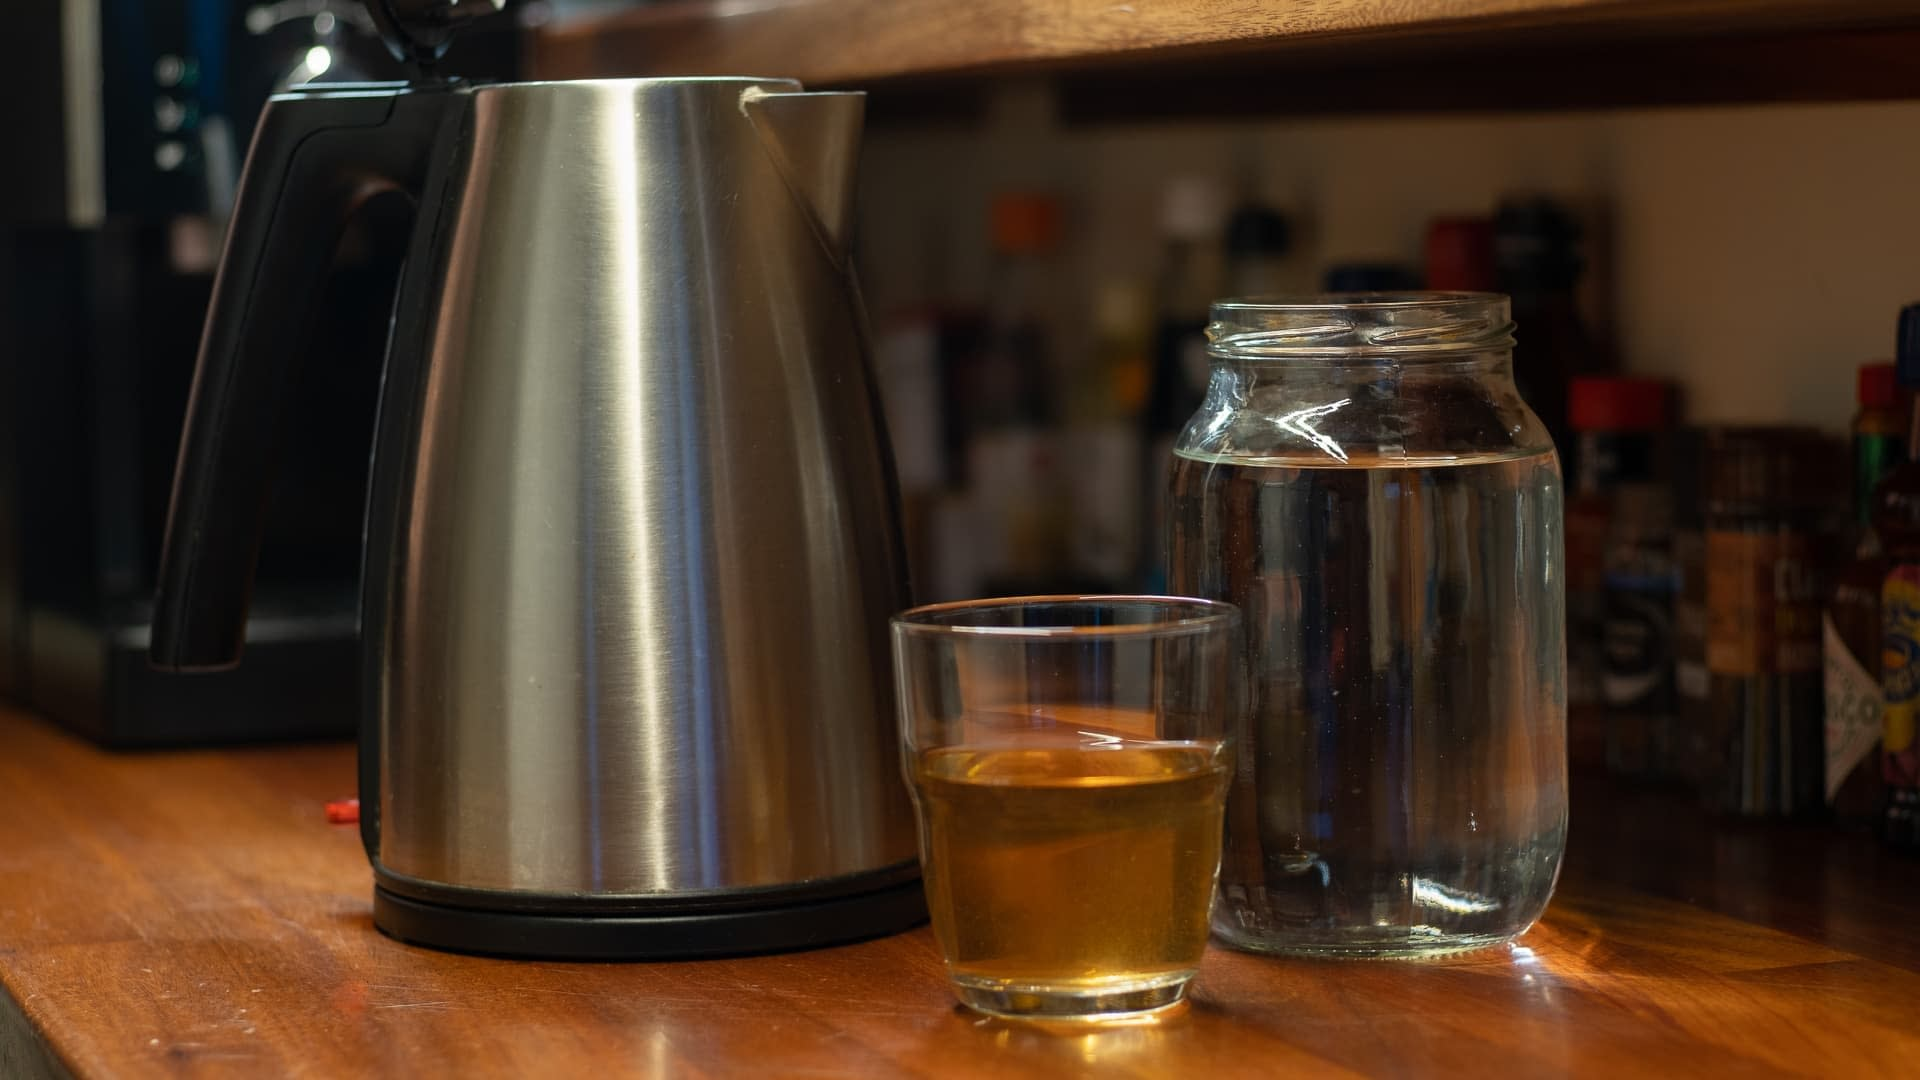 Descale your kettle with vinegar